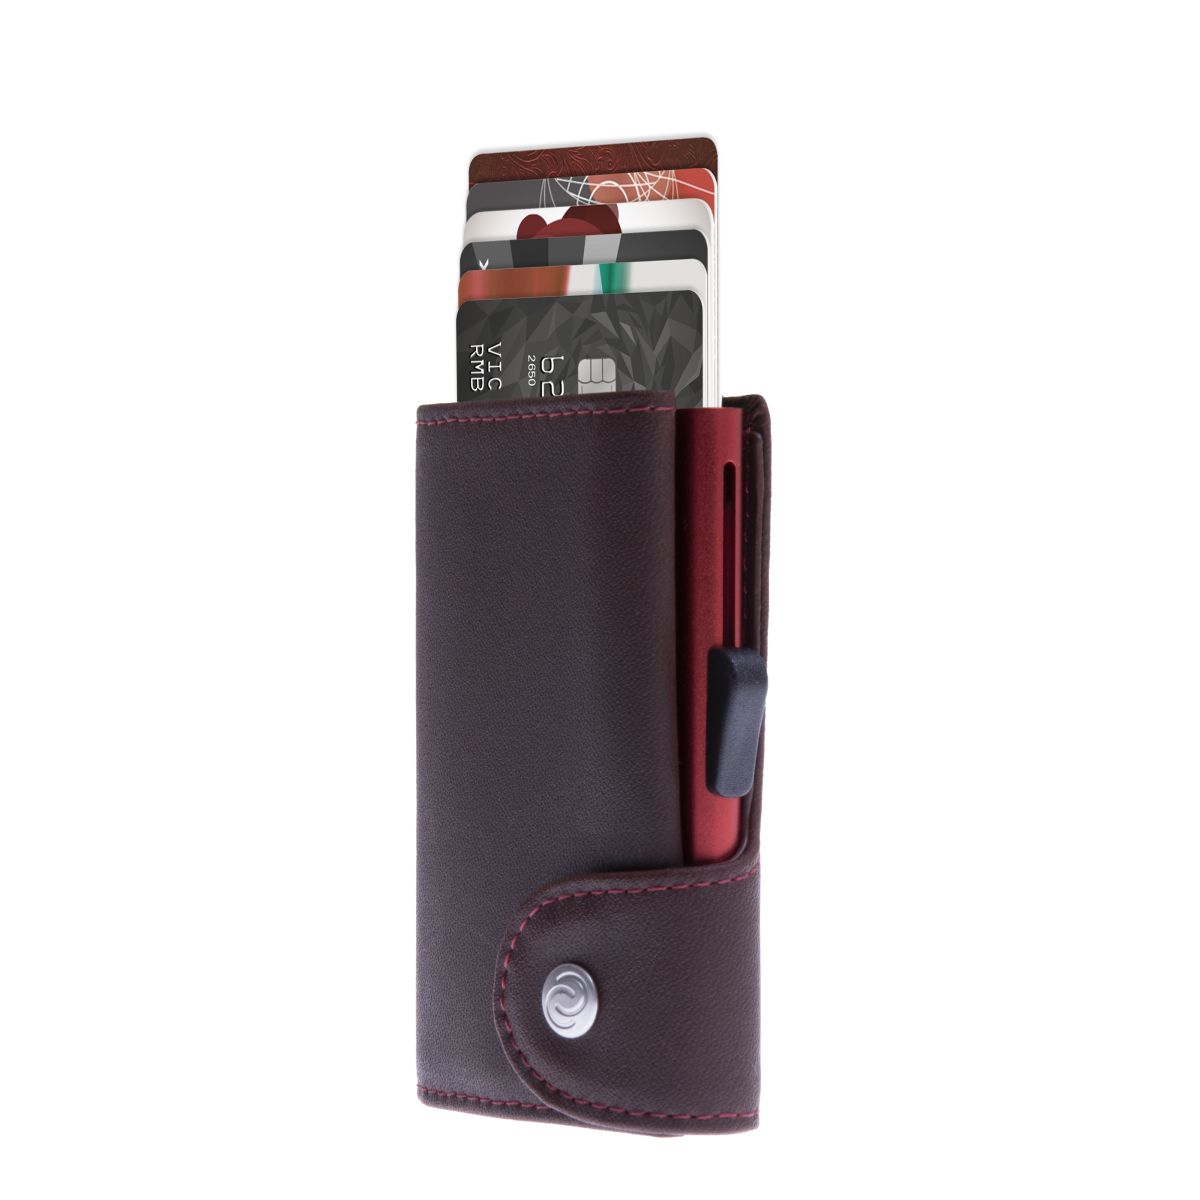 C-Secure Aluminum Card Holder with Genuine Leather - Auburn Brown